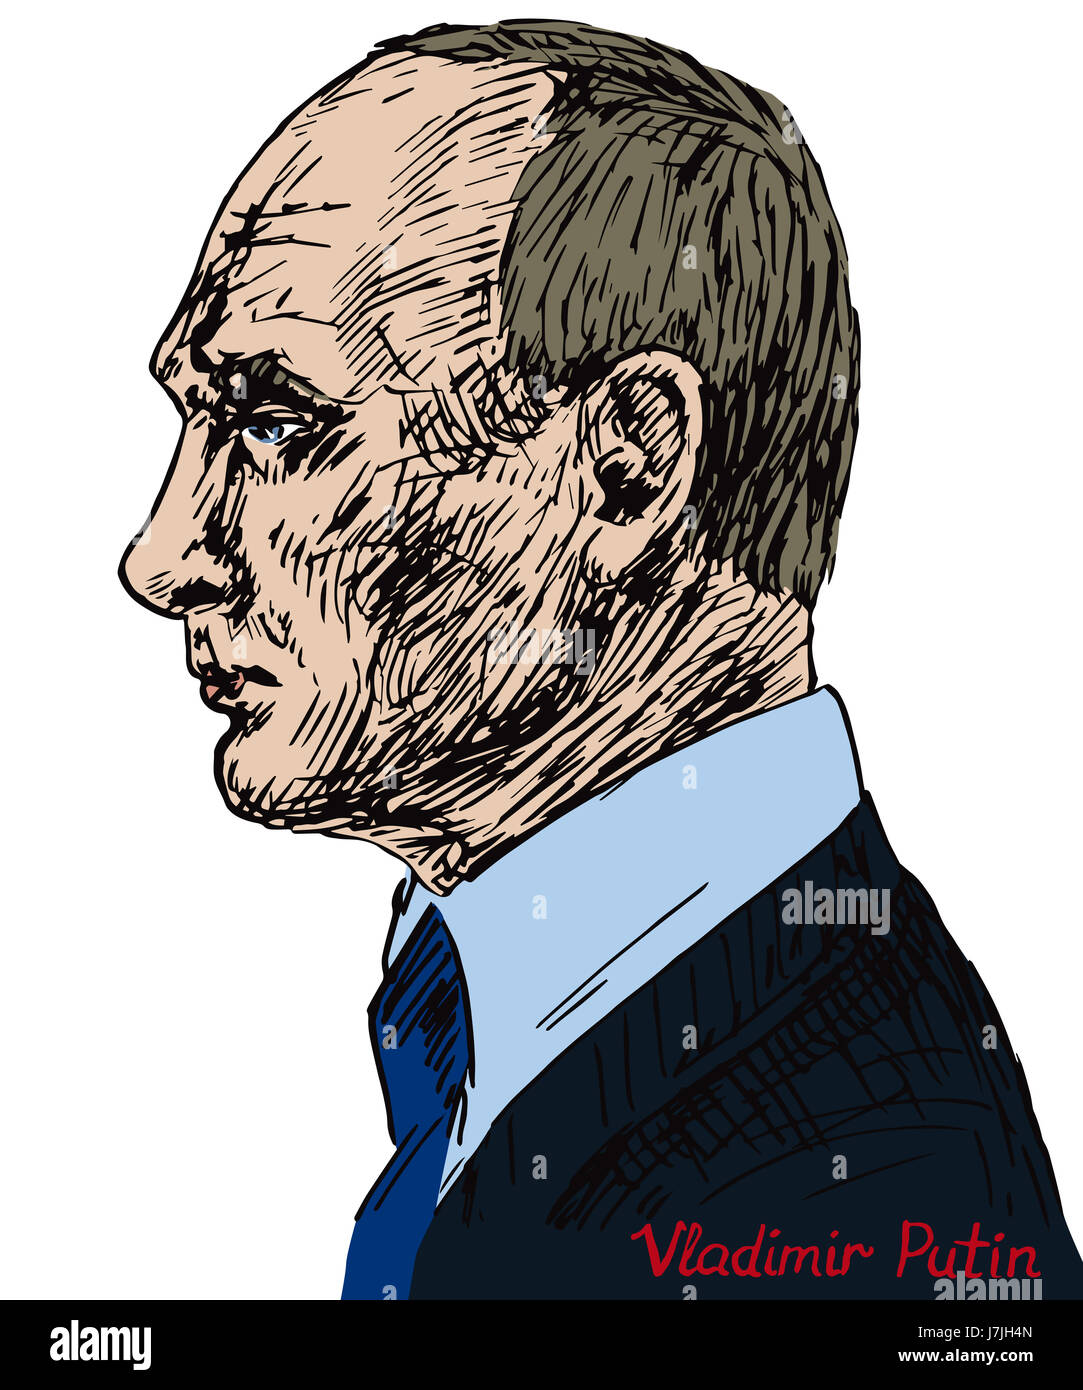 Vladimir Vladimirovich Putin, Russian politician, President of the Russian Federation,  drawn by hand illustration, - Stock Image